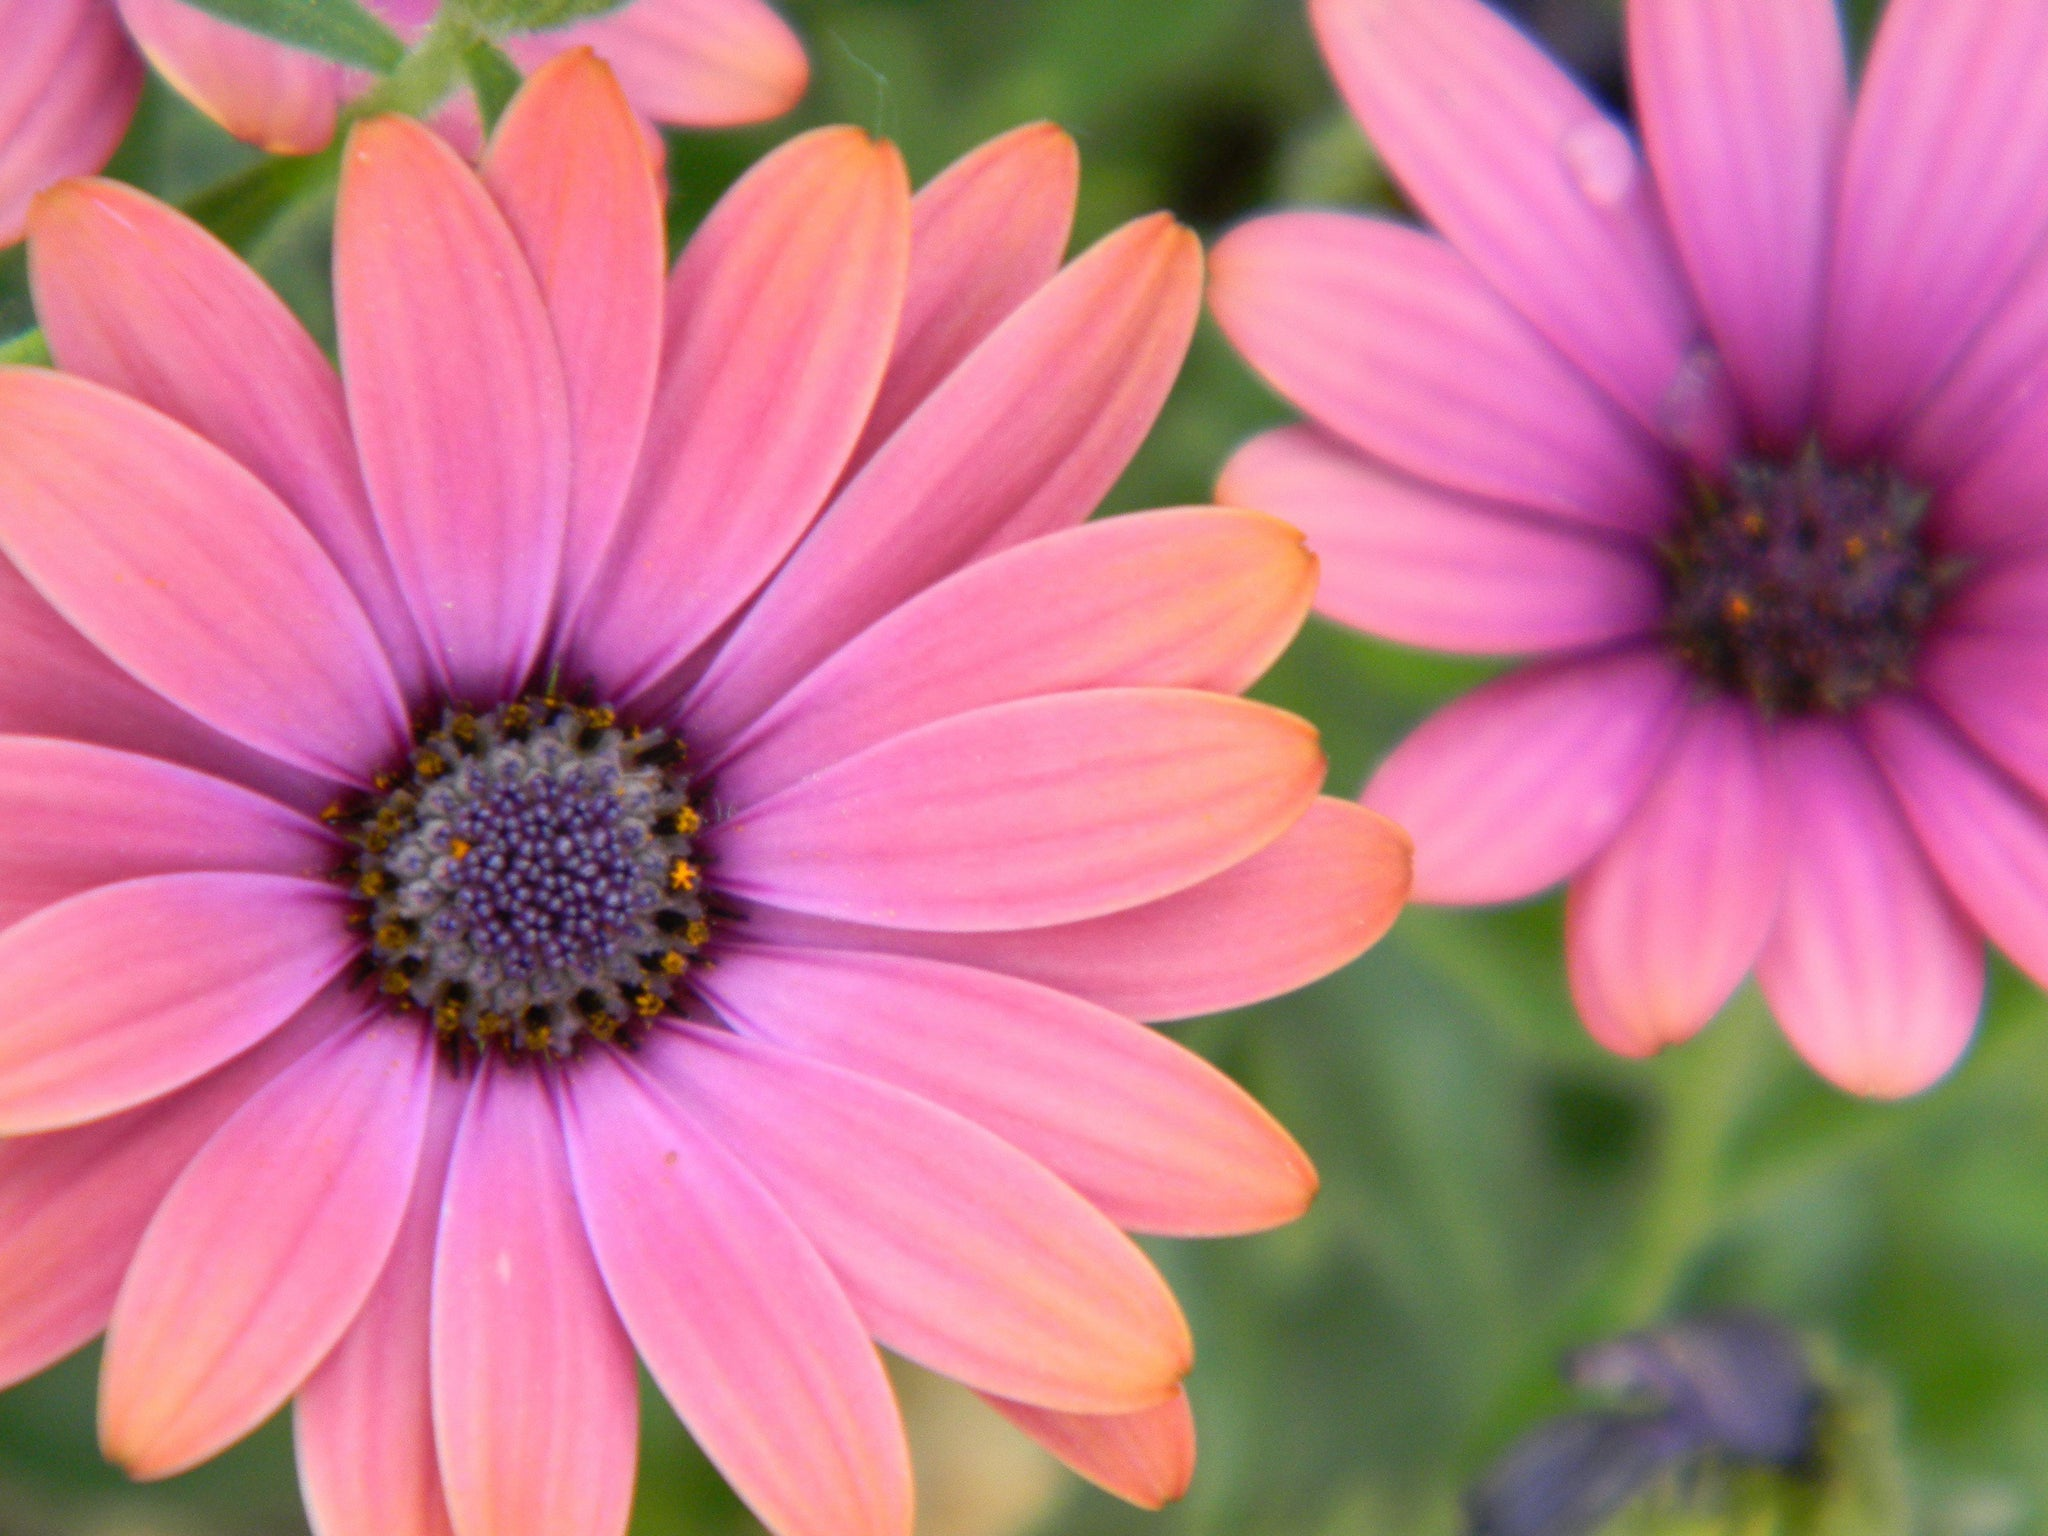 Pink Daises Jpeg Photo Download 124 Lazy Daises